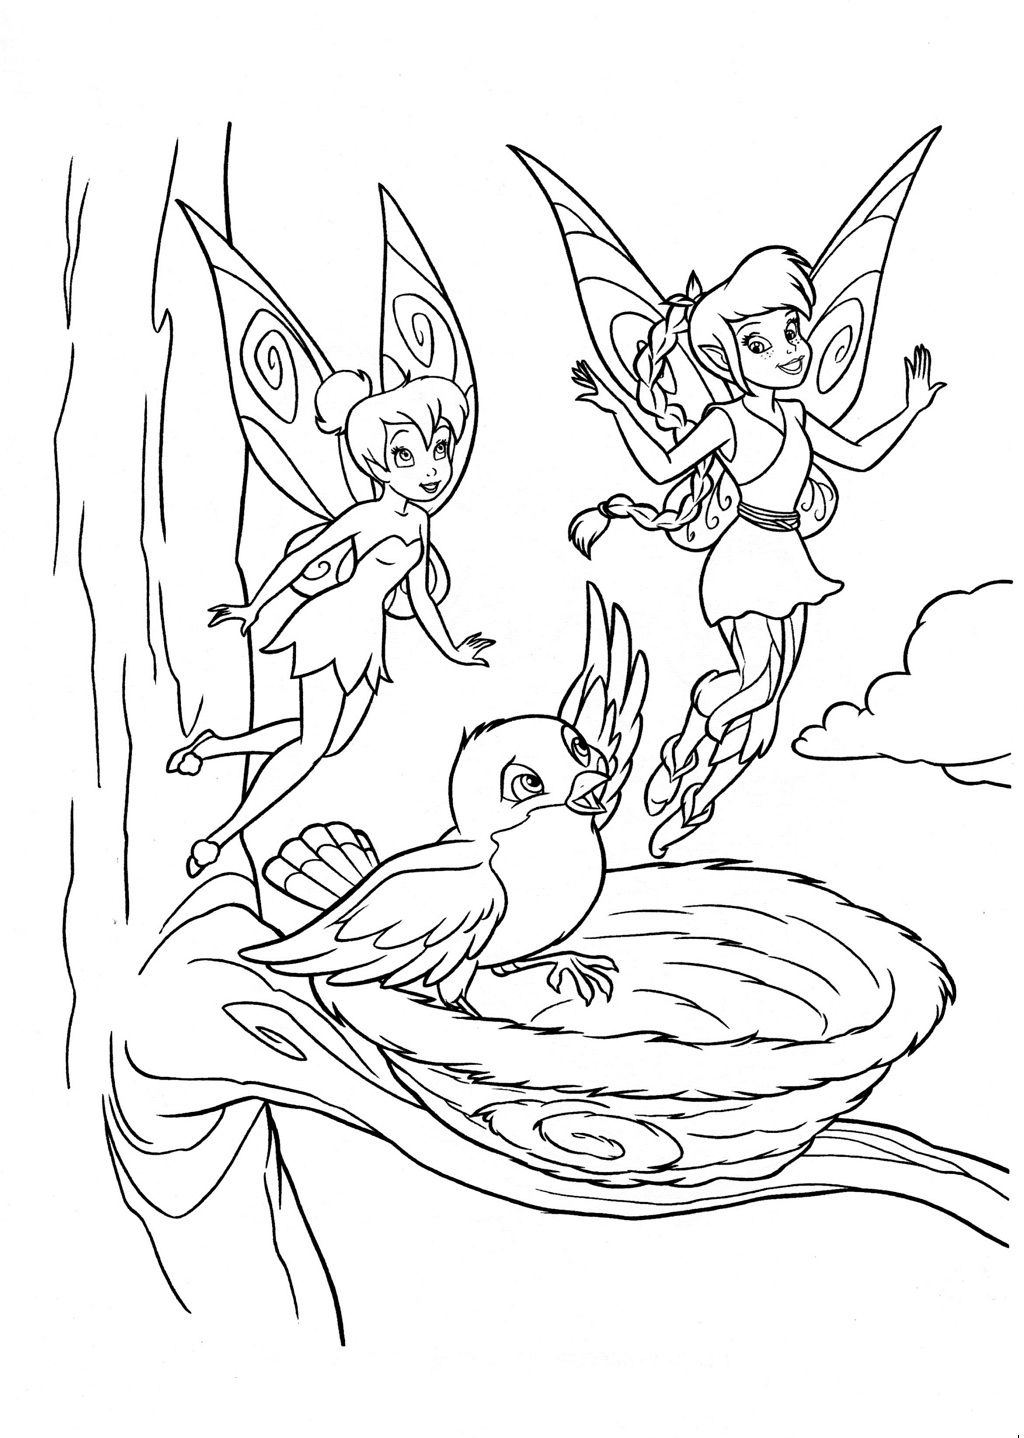 Coloring Pages Tinkerbell Free Coloring Pages 1000 images about kids coloring book on pinterest mandalas and colouring pages